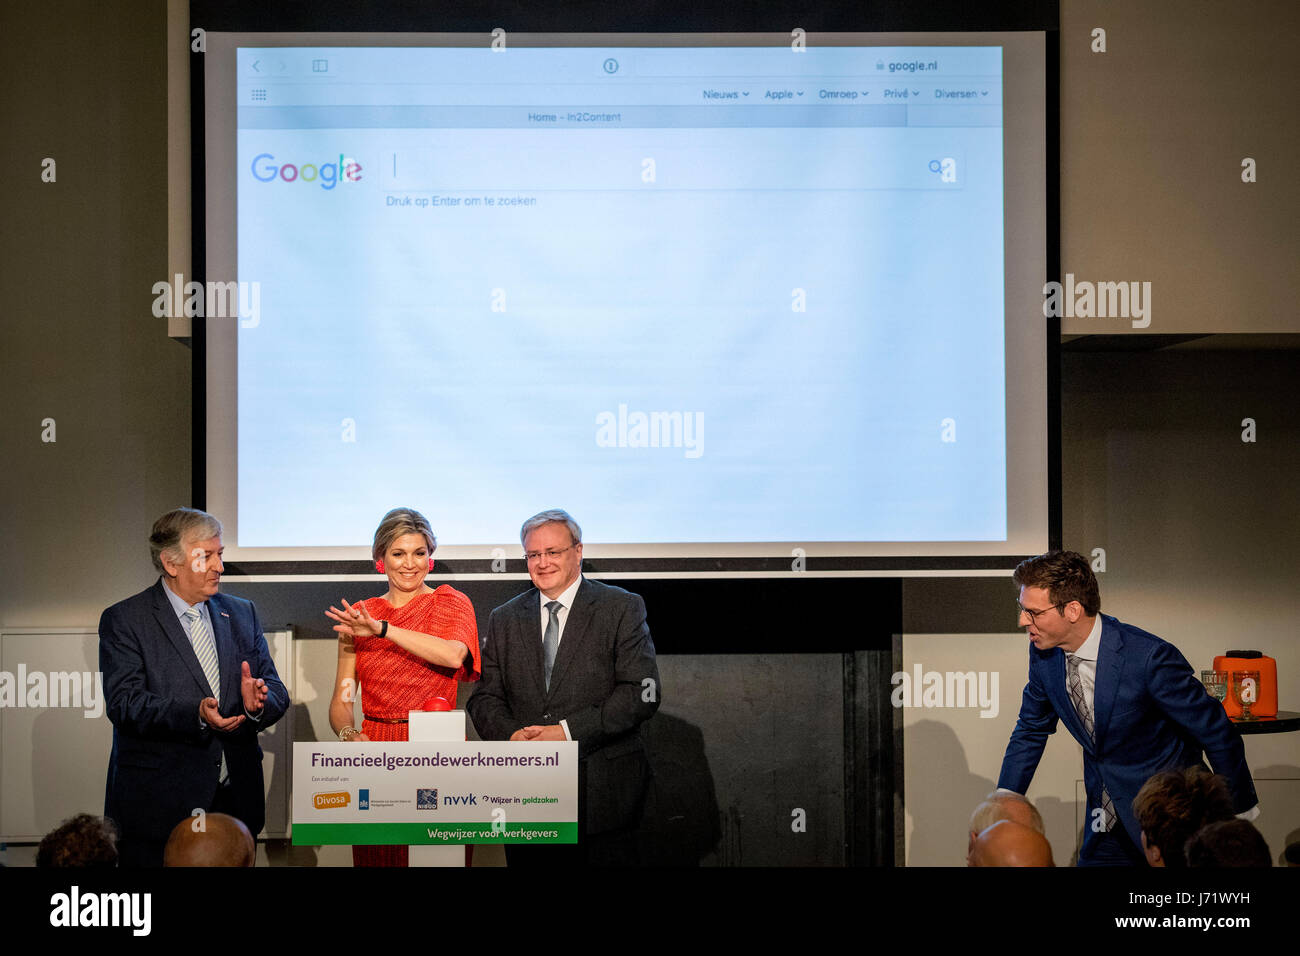 Amsterdam, The Netherlands. 23rd May, 2017. Queen Maxima of The Netherlands launches employers website at the annual - Stock Image